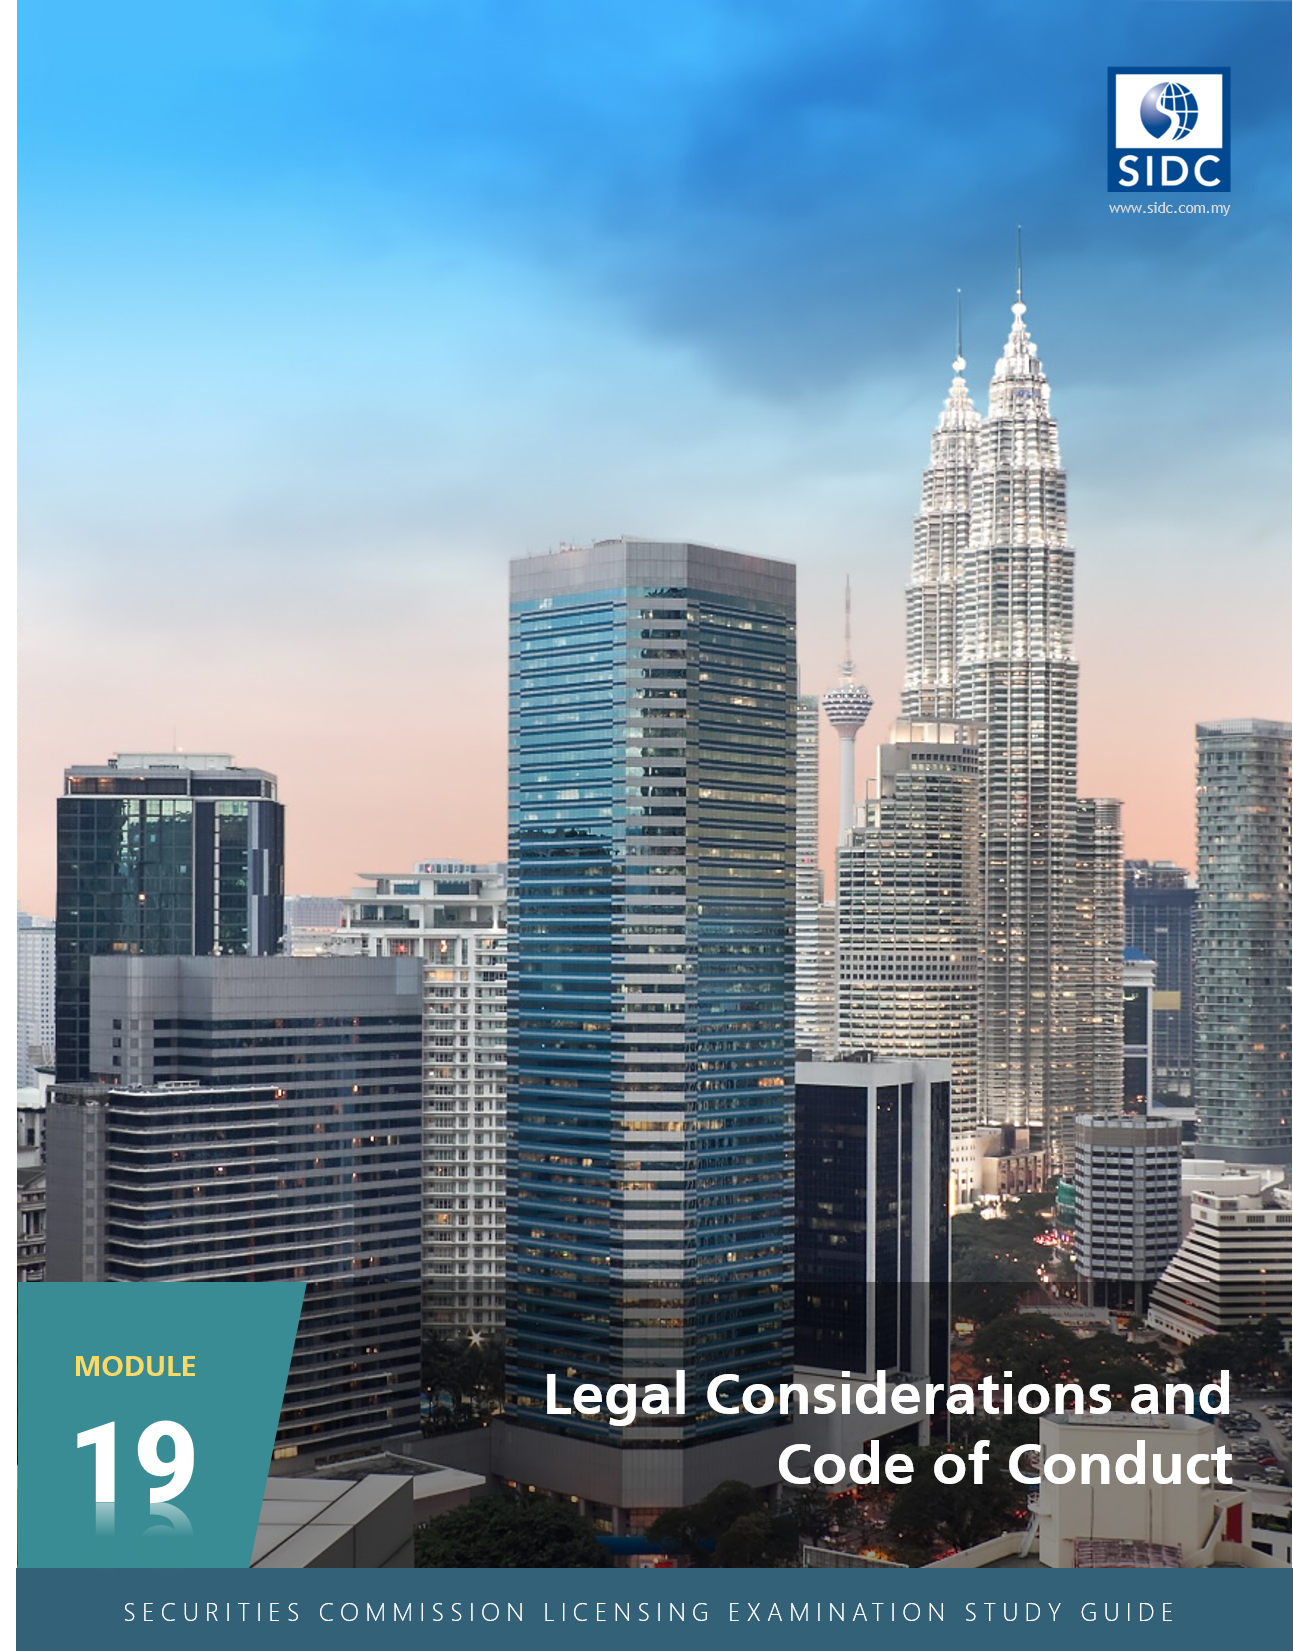 Legal Considerations and Code of Conduct